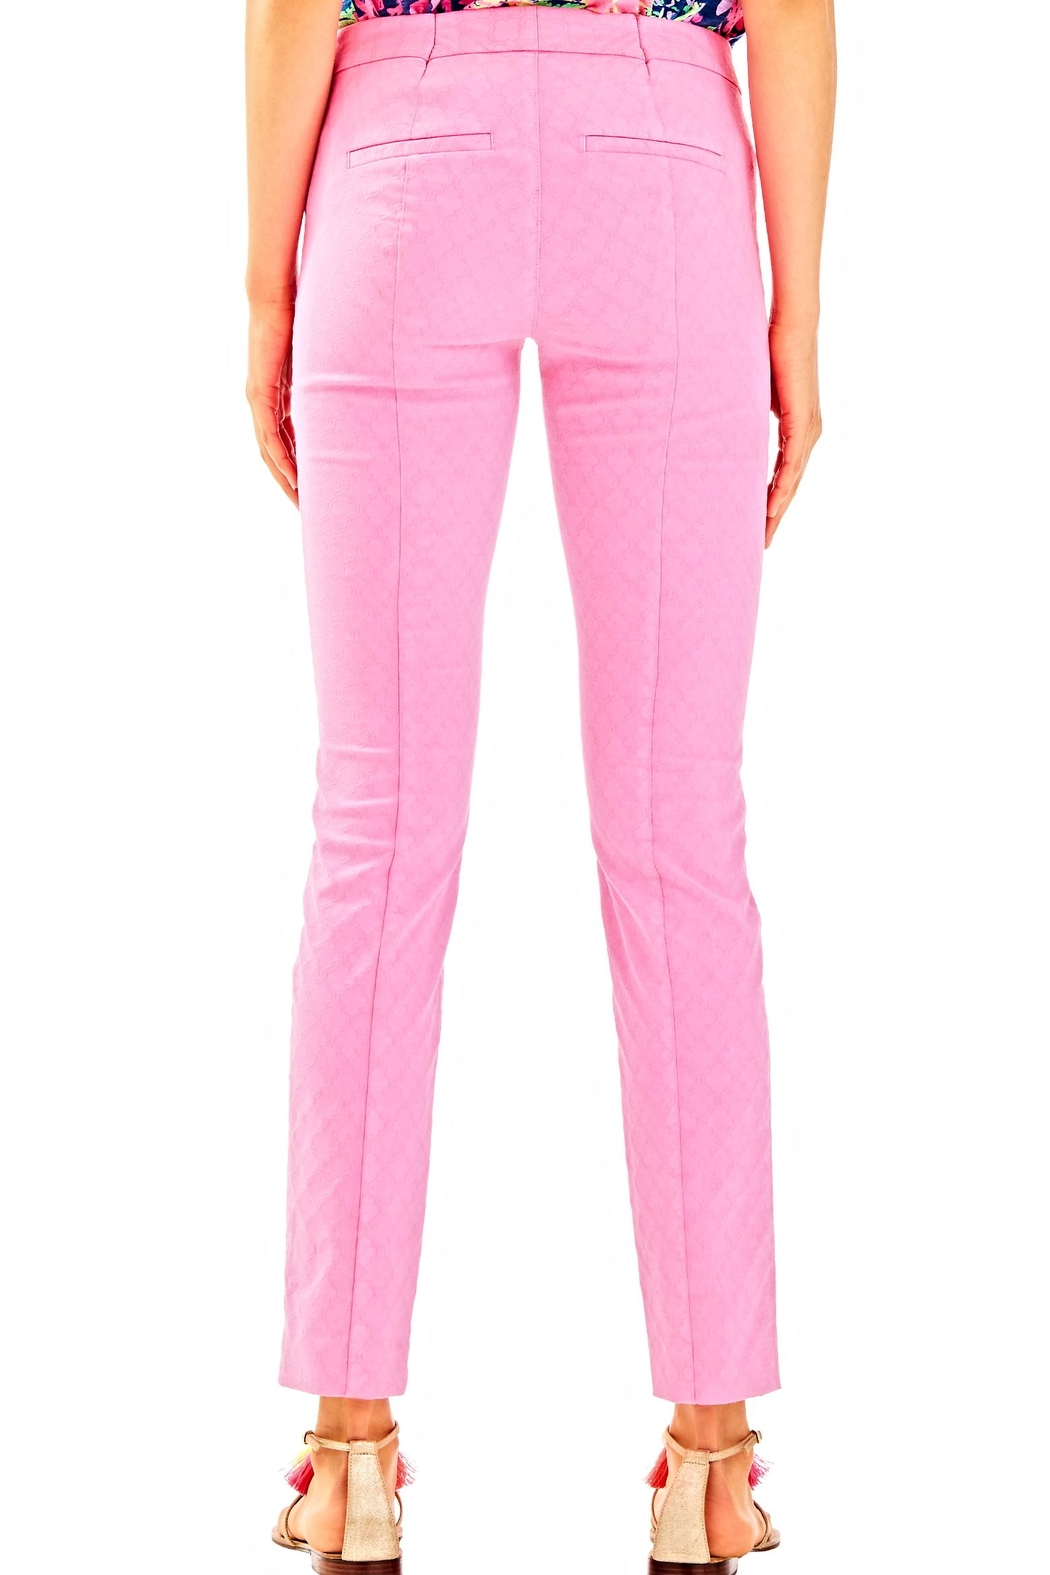 Lilly Pulitzer Kelly Skinny Ankle Pant - Front Full Image